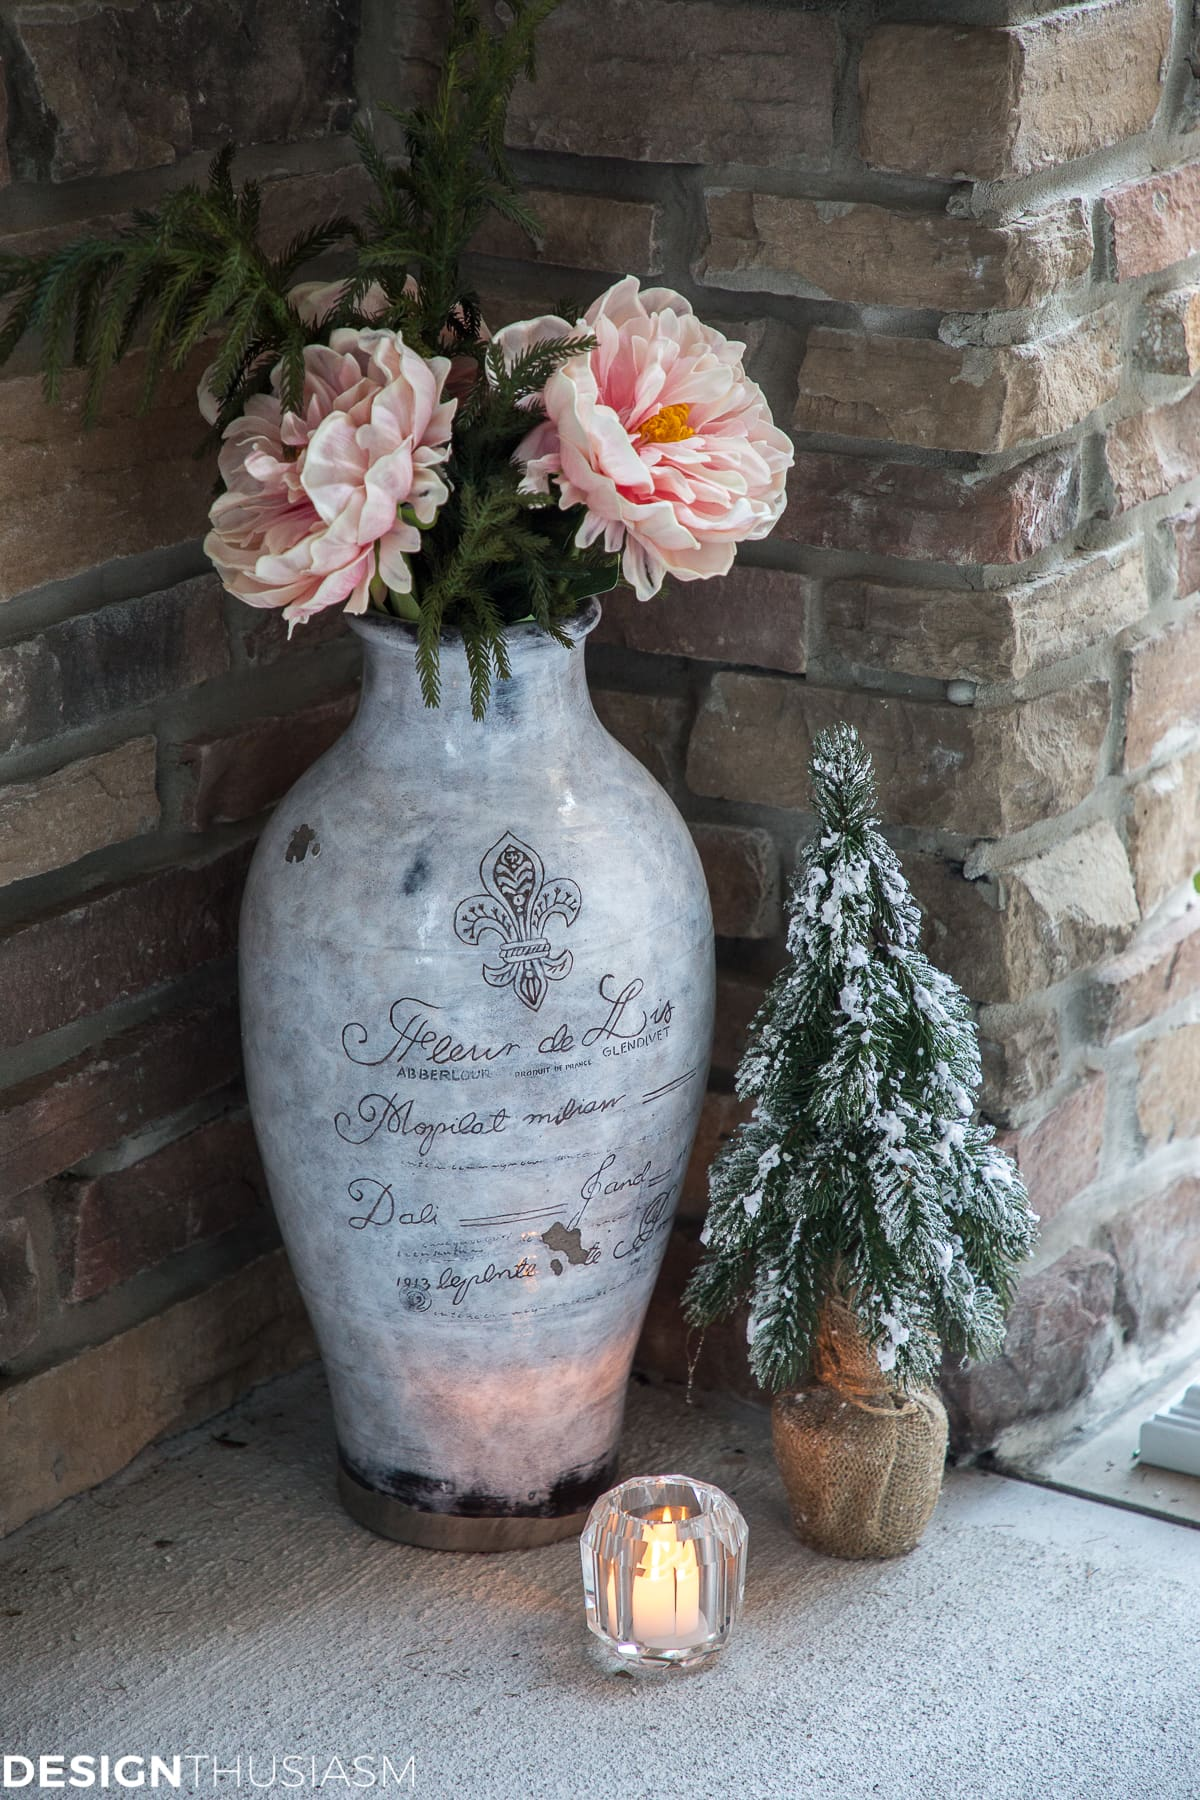 Christmas Porch Decorating Ideas for a Tiny Entryway